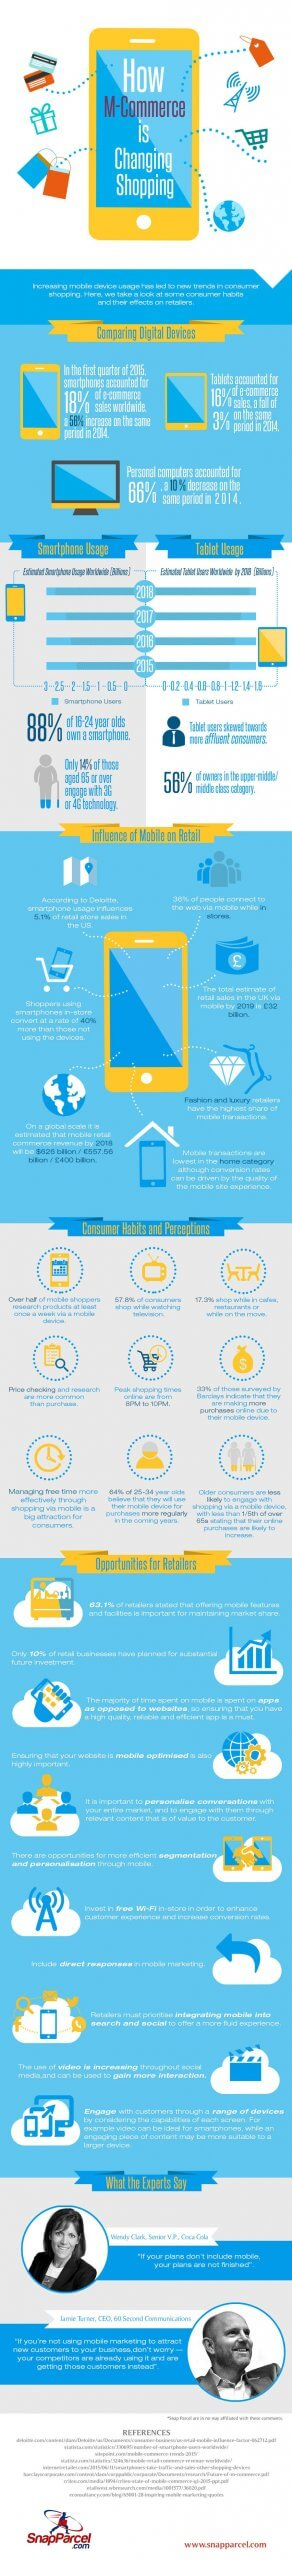 M-Commerce is Transforming Retail Infographic